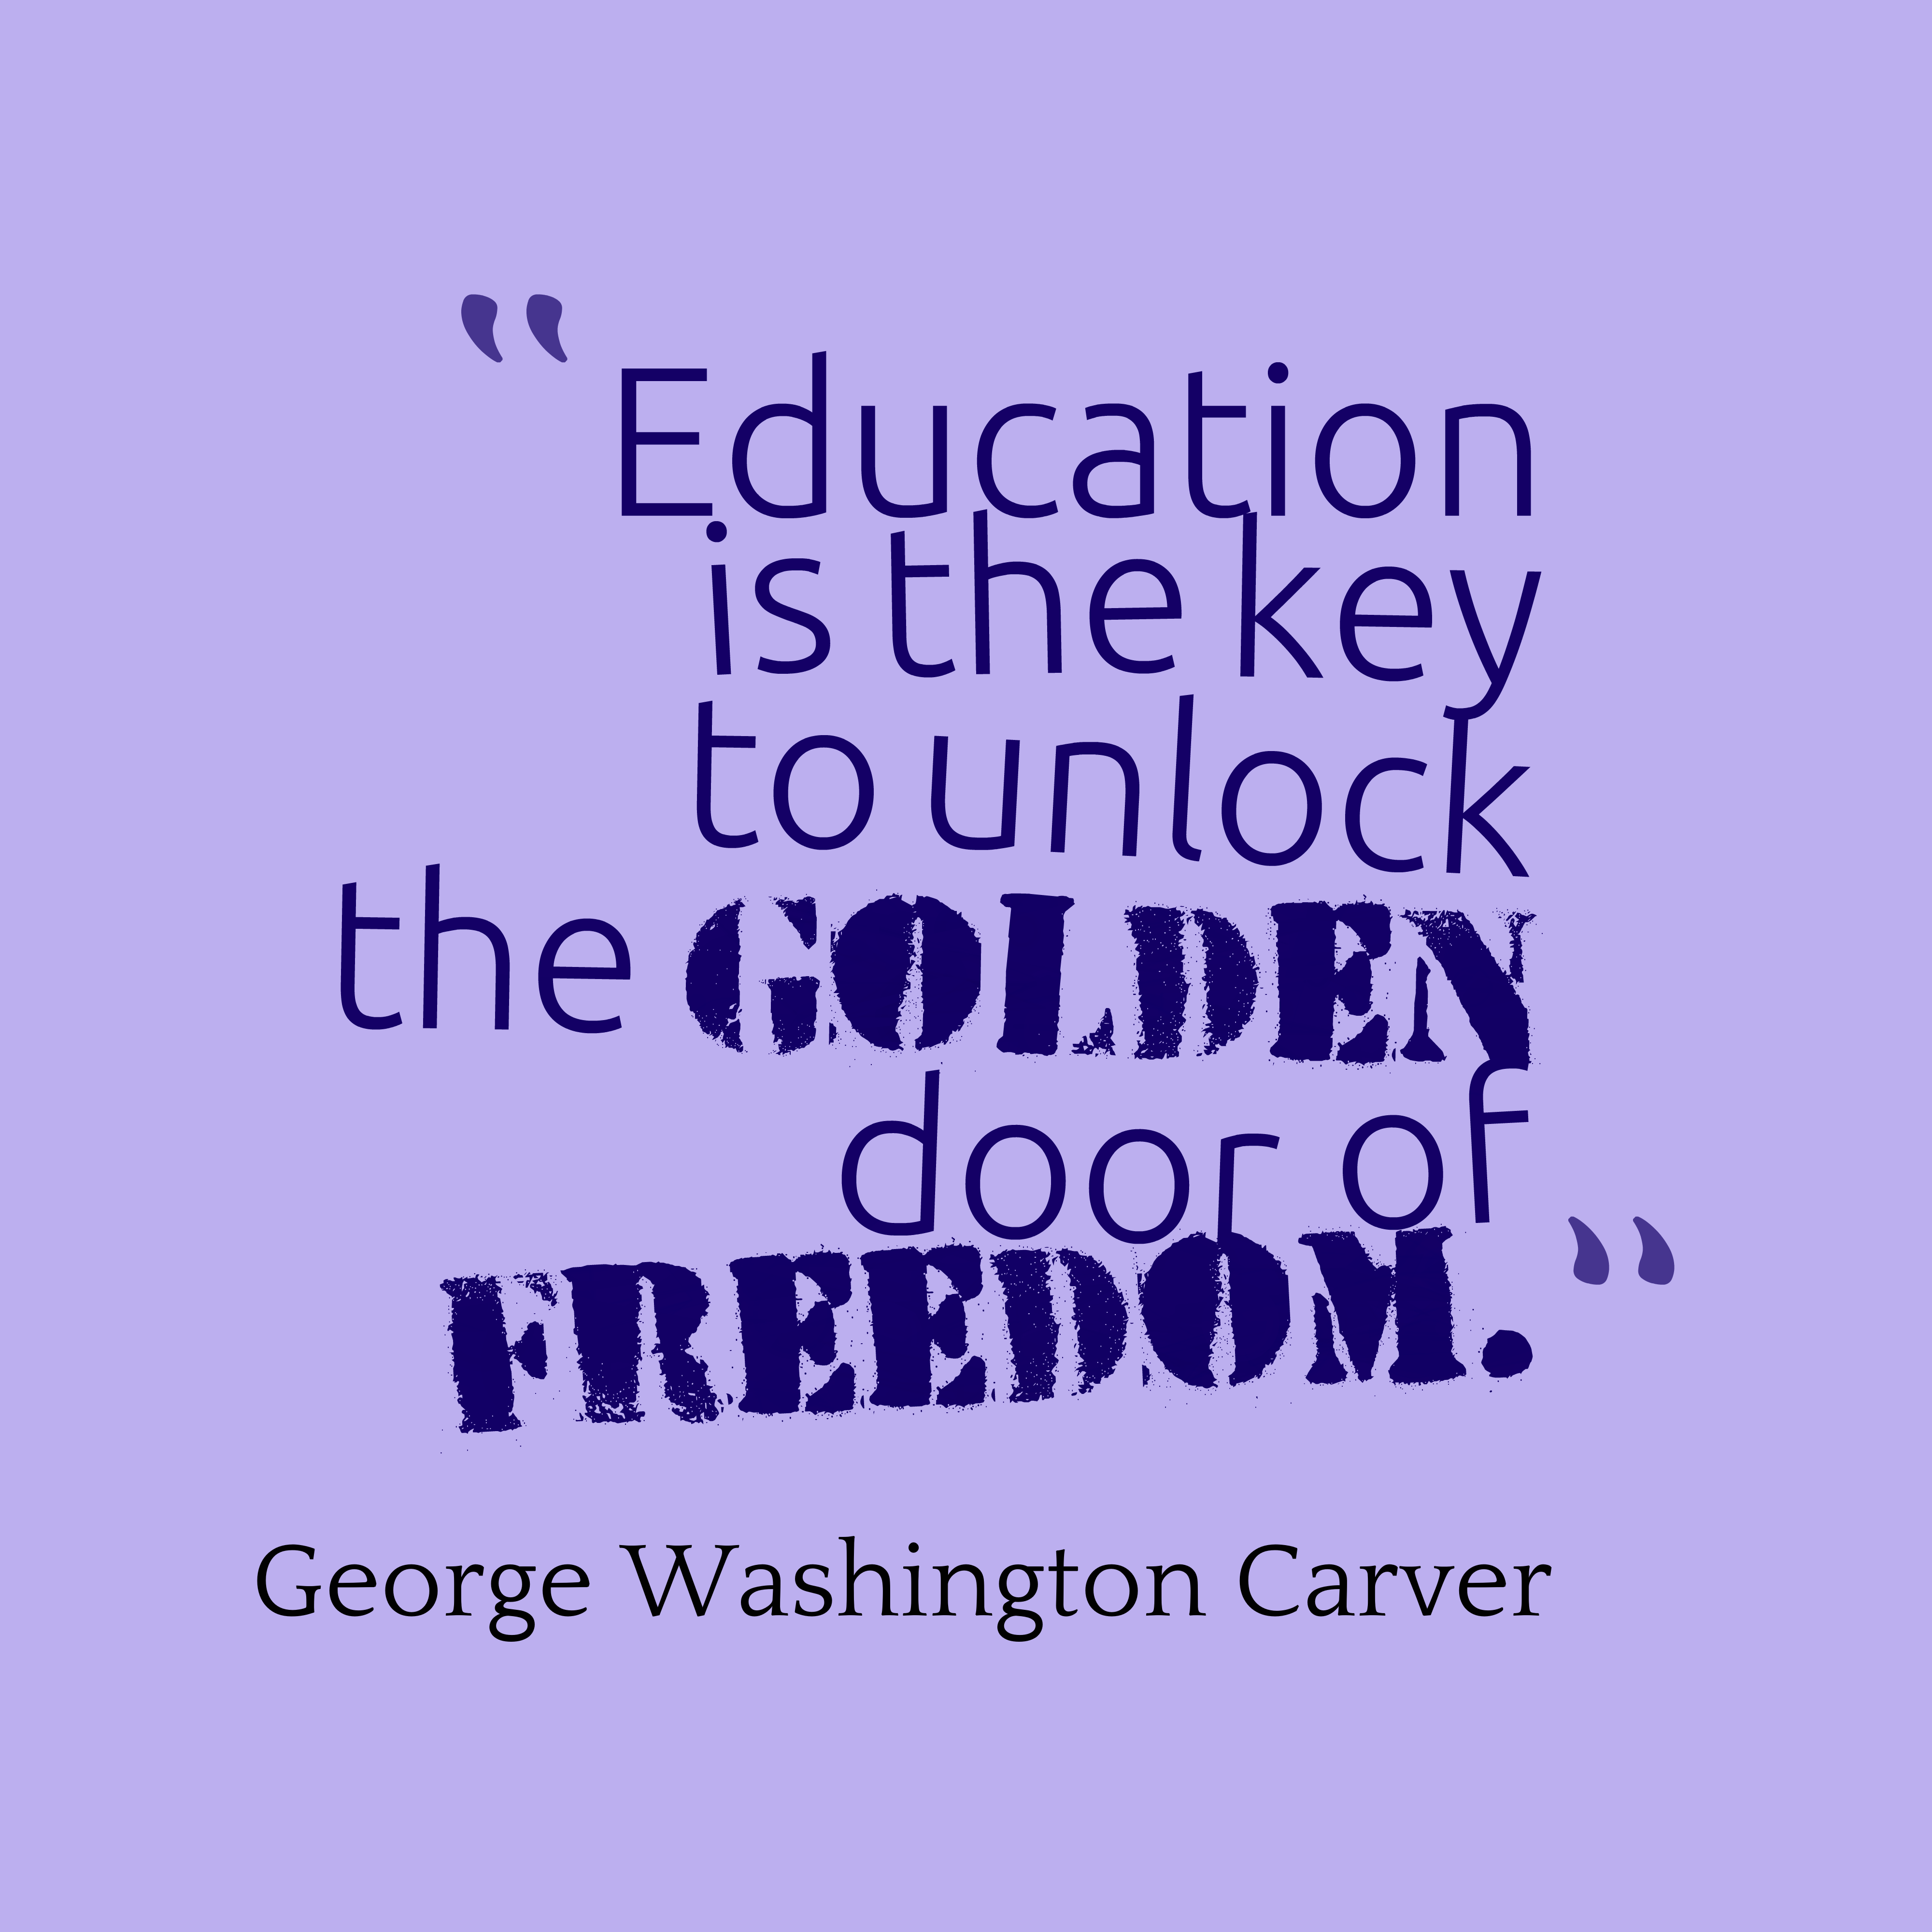 Quotes About Education Importance Quotes about Education importance (48 quotes) Quotes About Education Importance